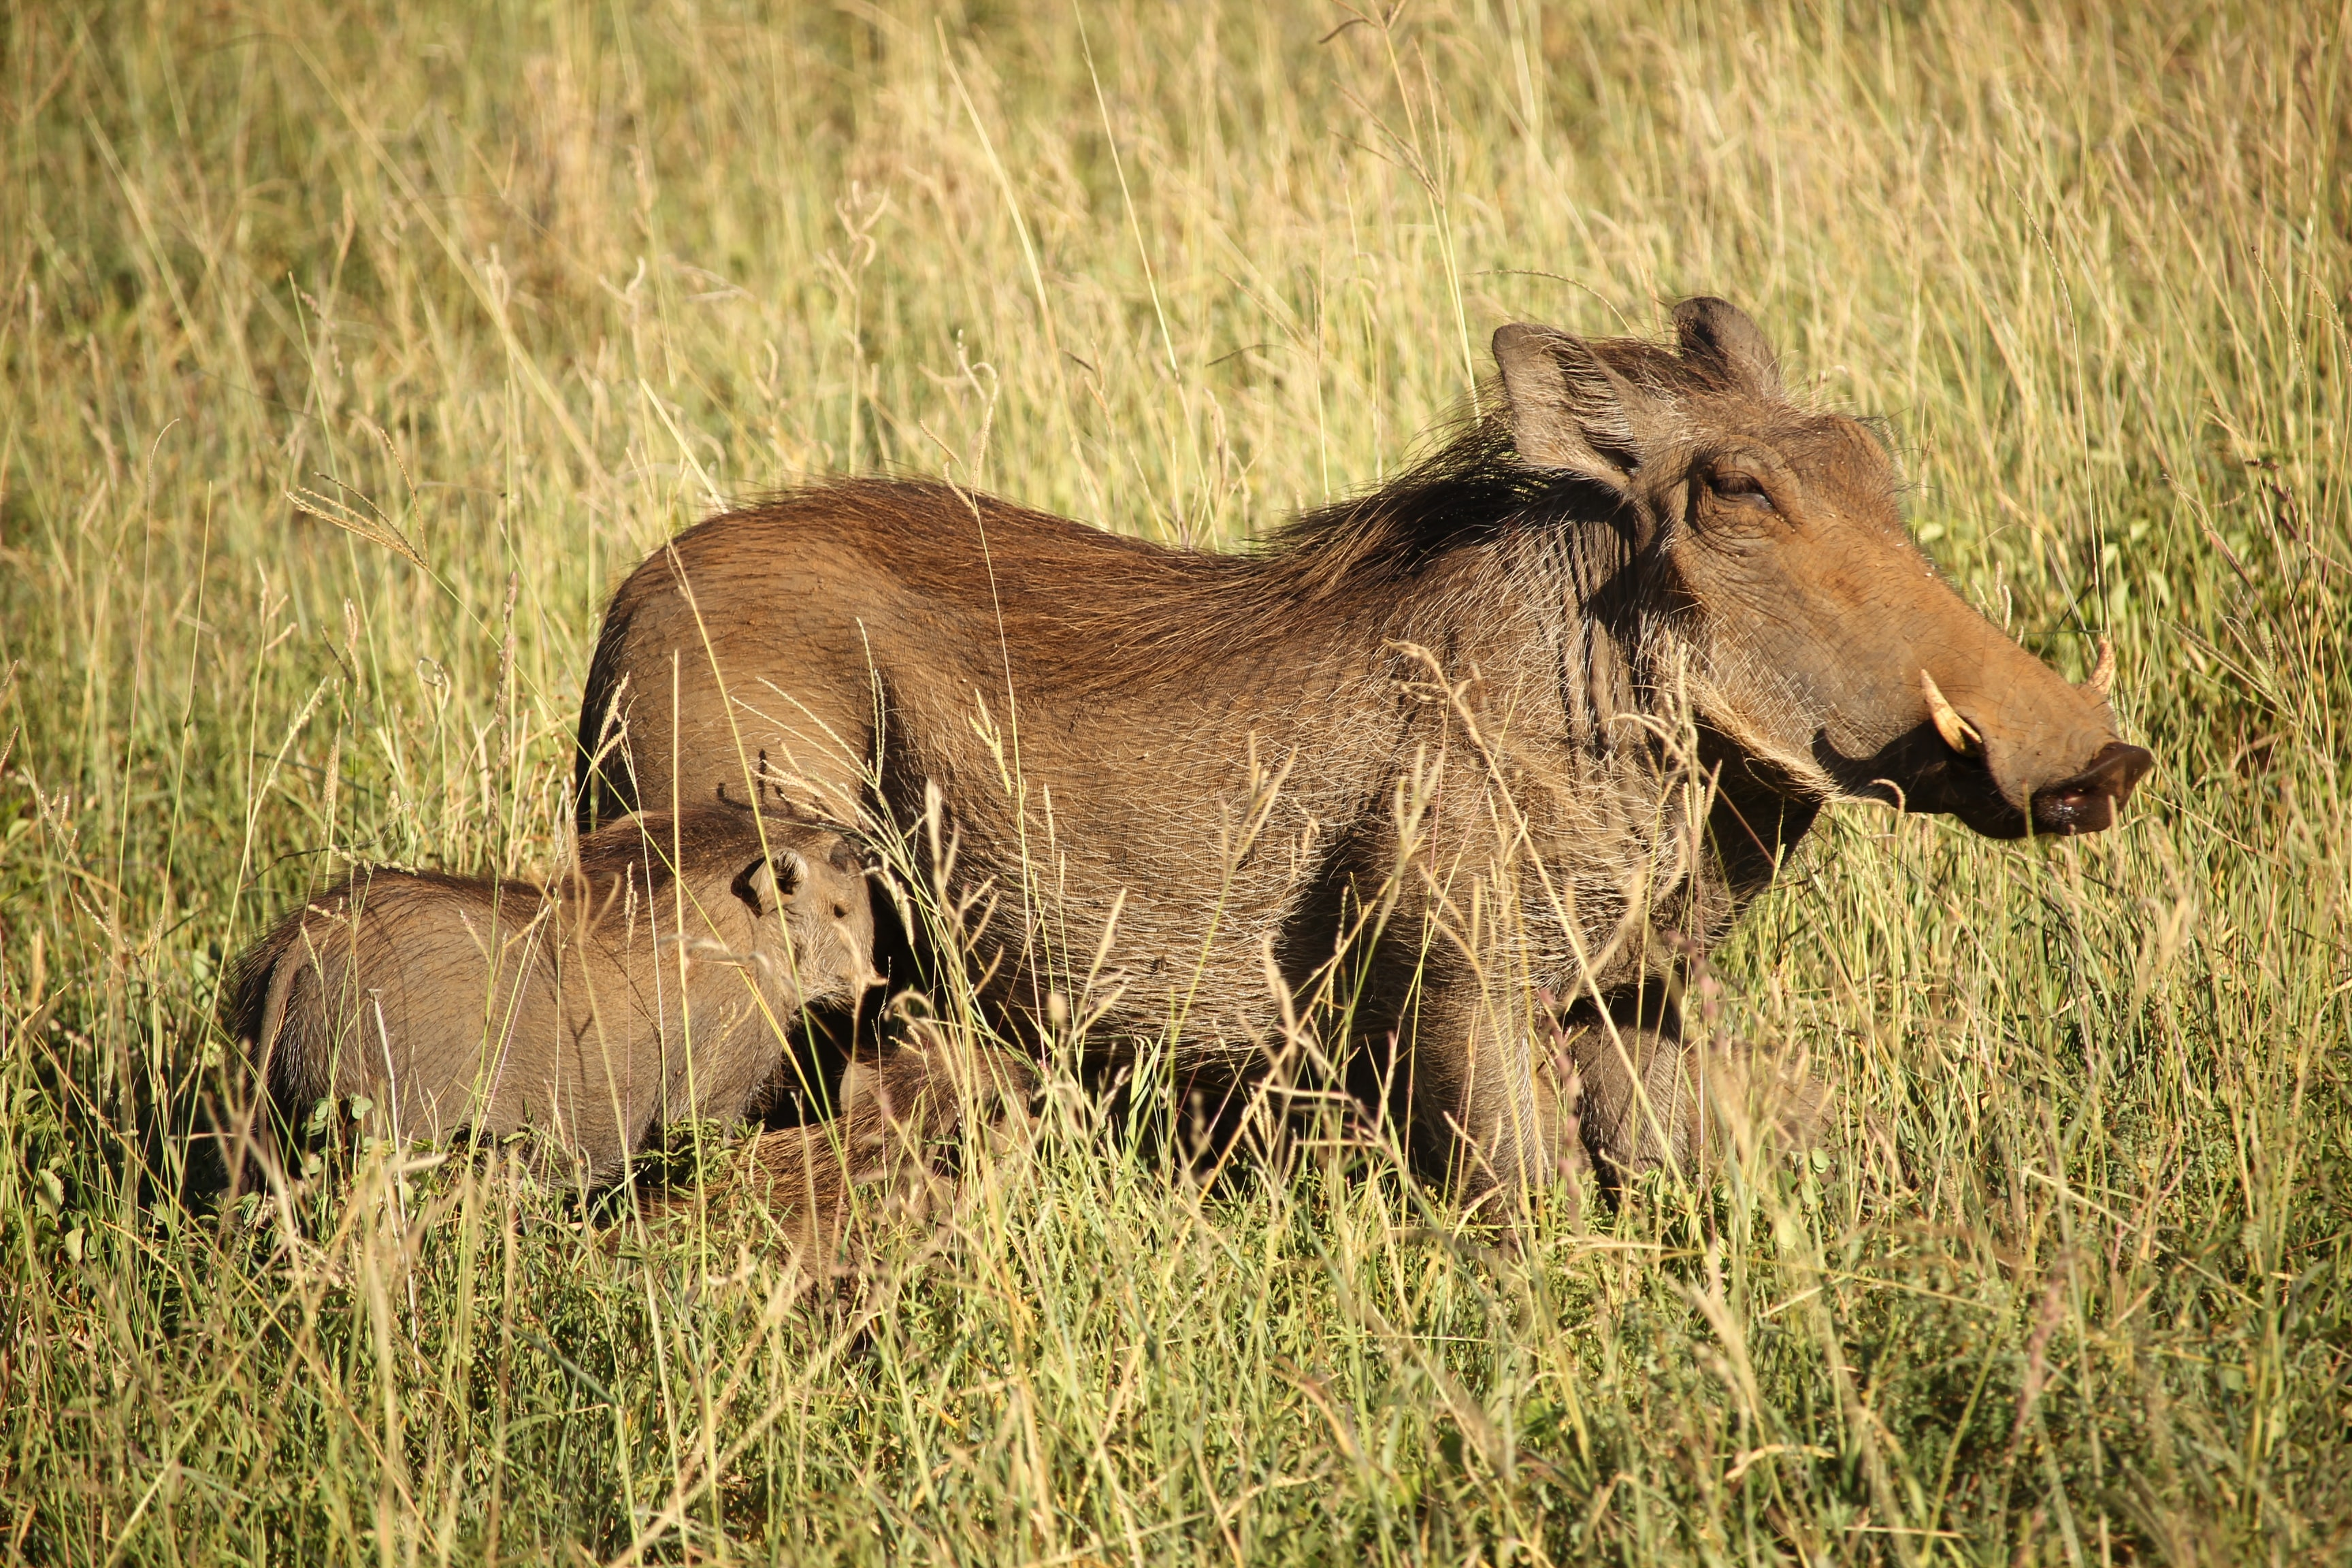 brown warthog and young warthog surrounded by grass during daytime